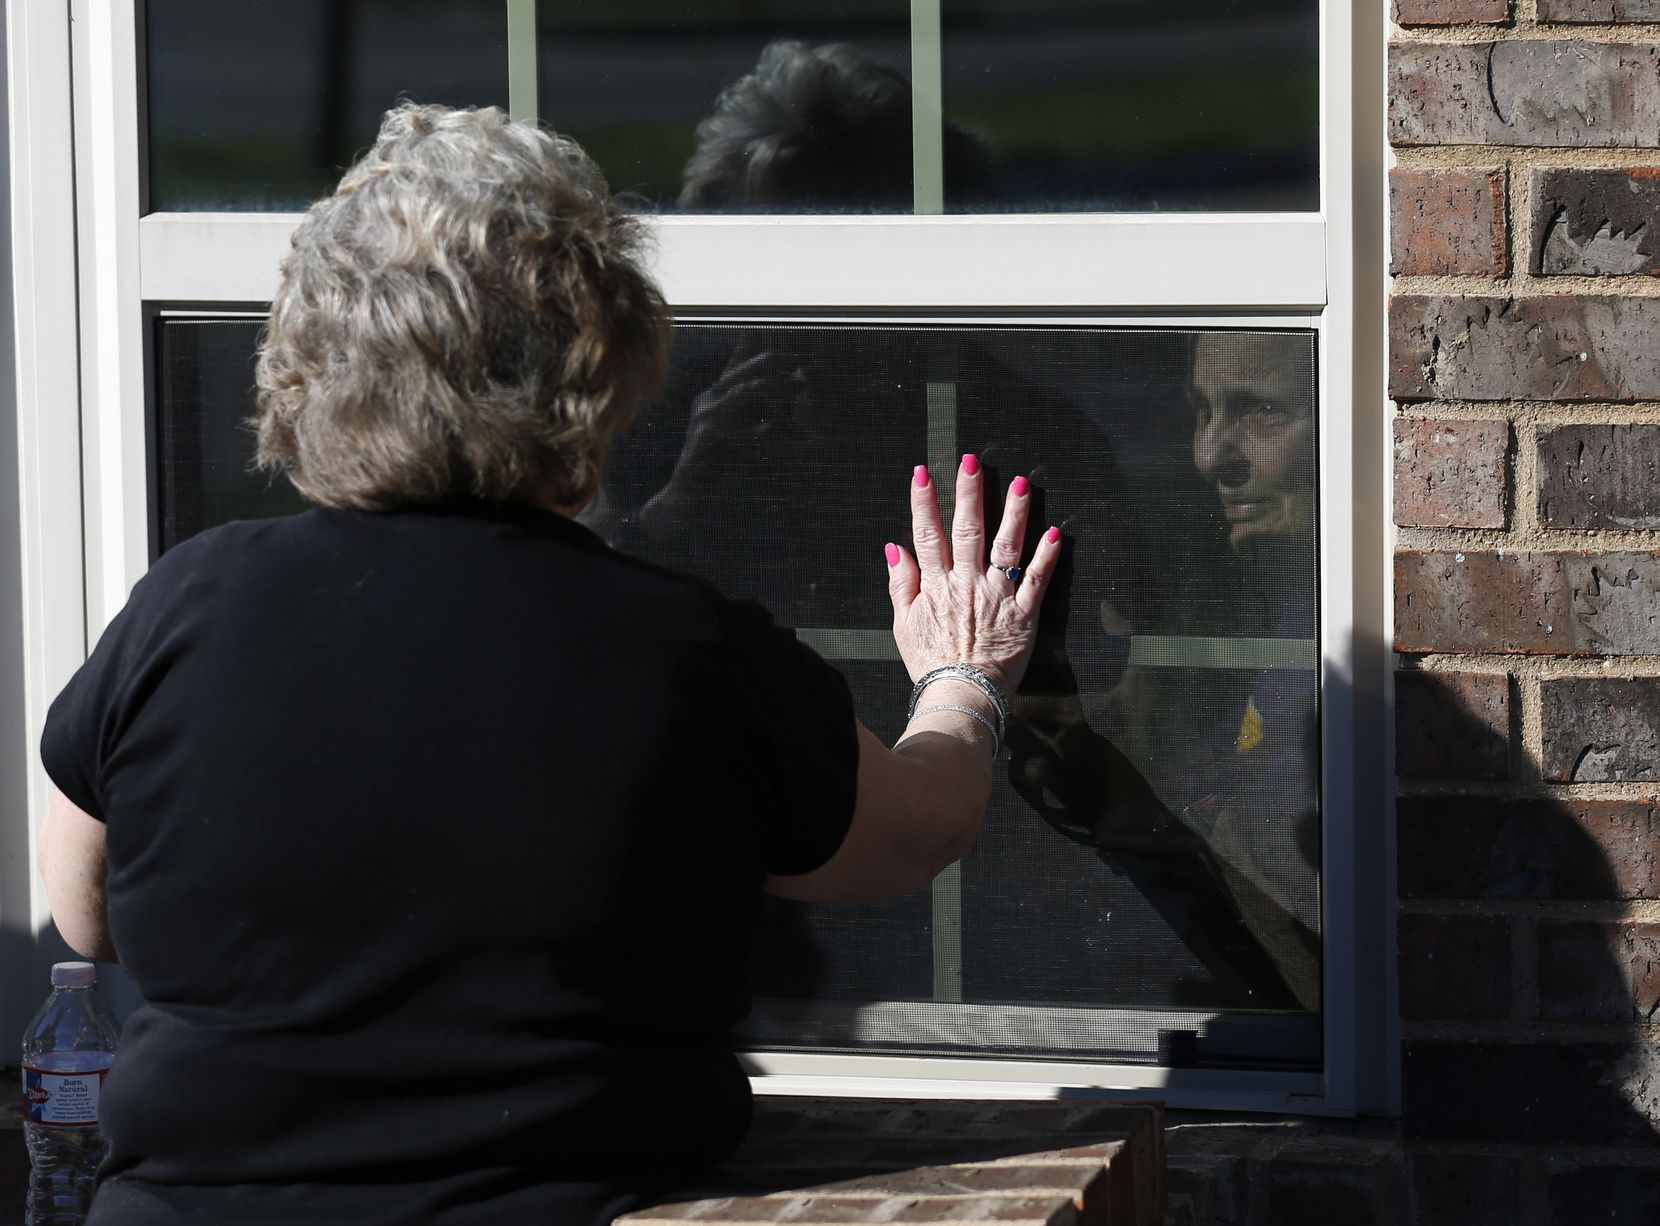 Cindy Goleman waves goodbye to her mother Peggy White from opposites sides of the window at The Pavilion at Creekwood, a healthcare and rehabilitation center in Mansfield.